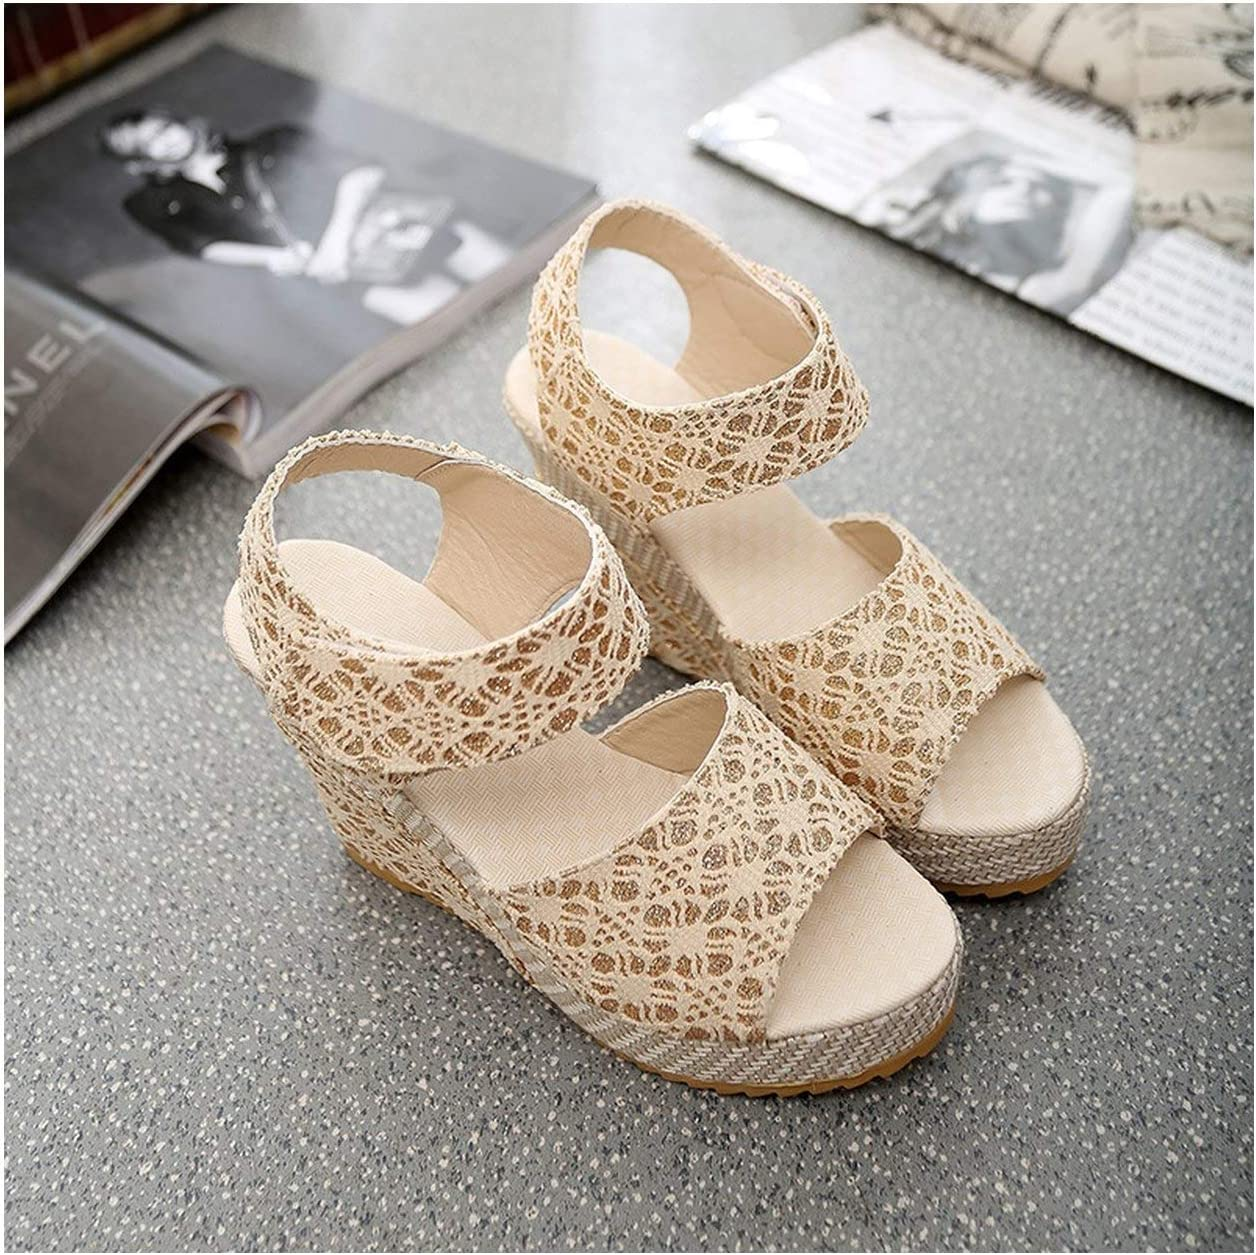 HANBINGPO Women Sandals New Summer Fashion Lace Hollow Gladiator Wedges Shoes Woman Slides Peep Toe Hook /& Loop Solid Lady Casual,3376 Beige,5